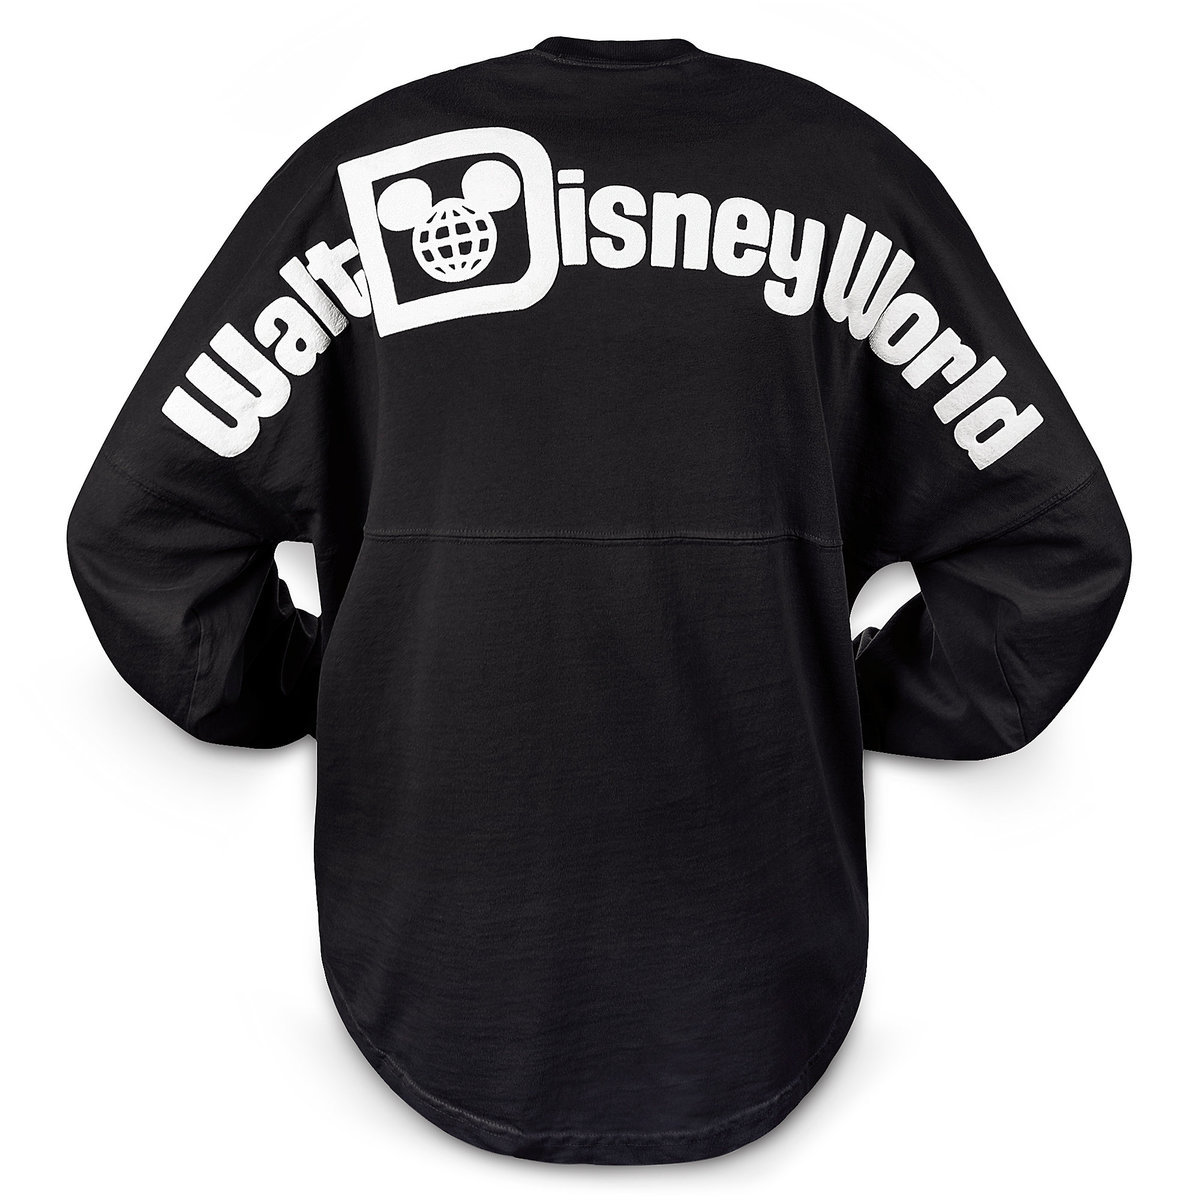 c54e3205 Product Image of Walt Disney World Long Sleeve Spirit T-Shirt for Women -  Black